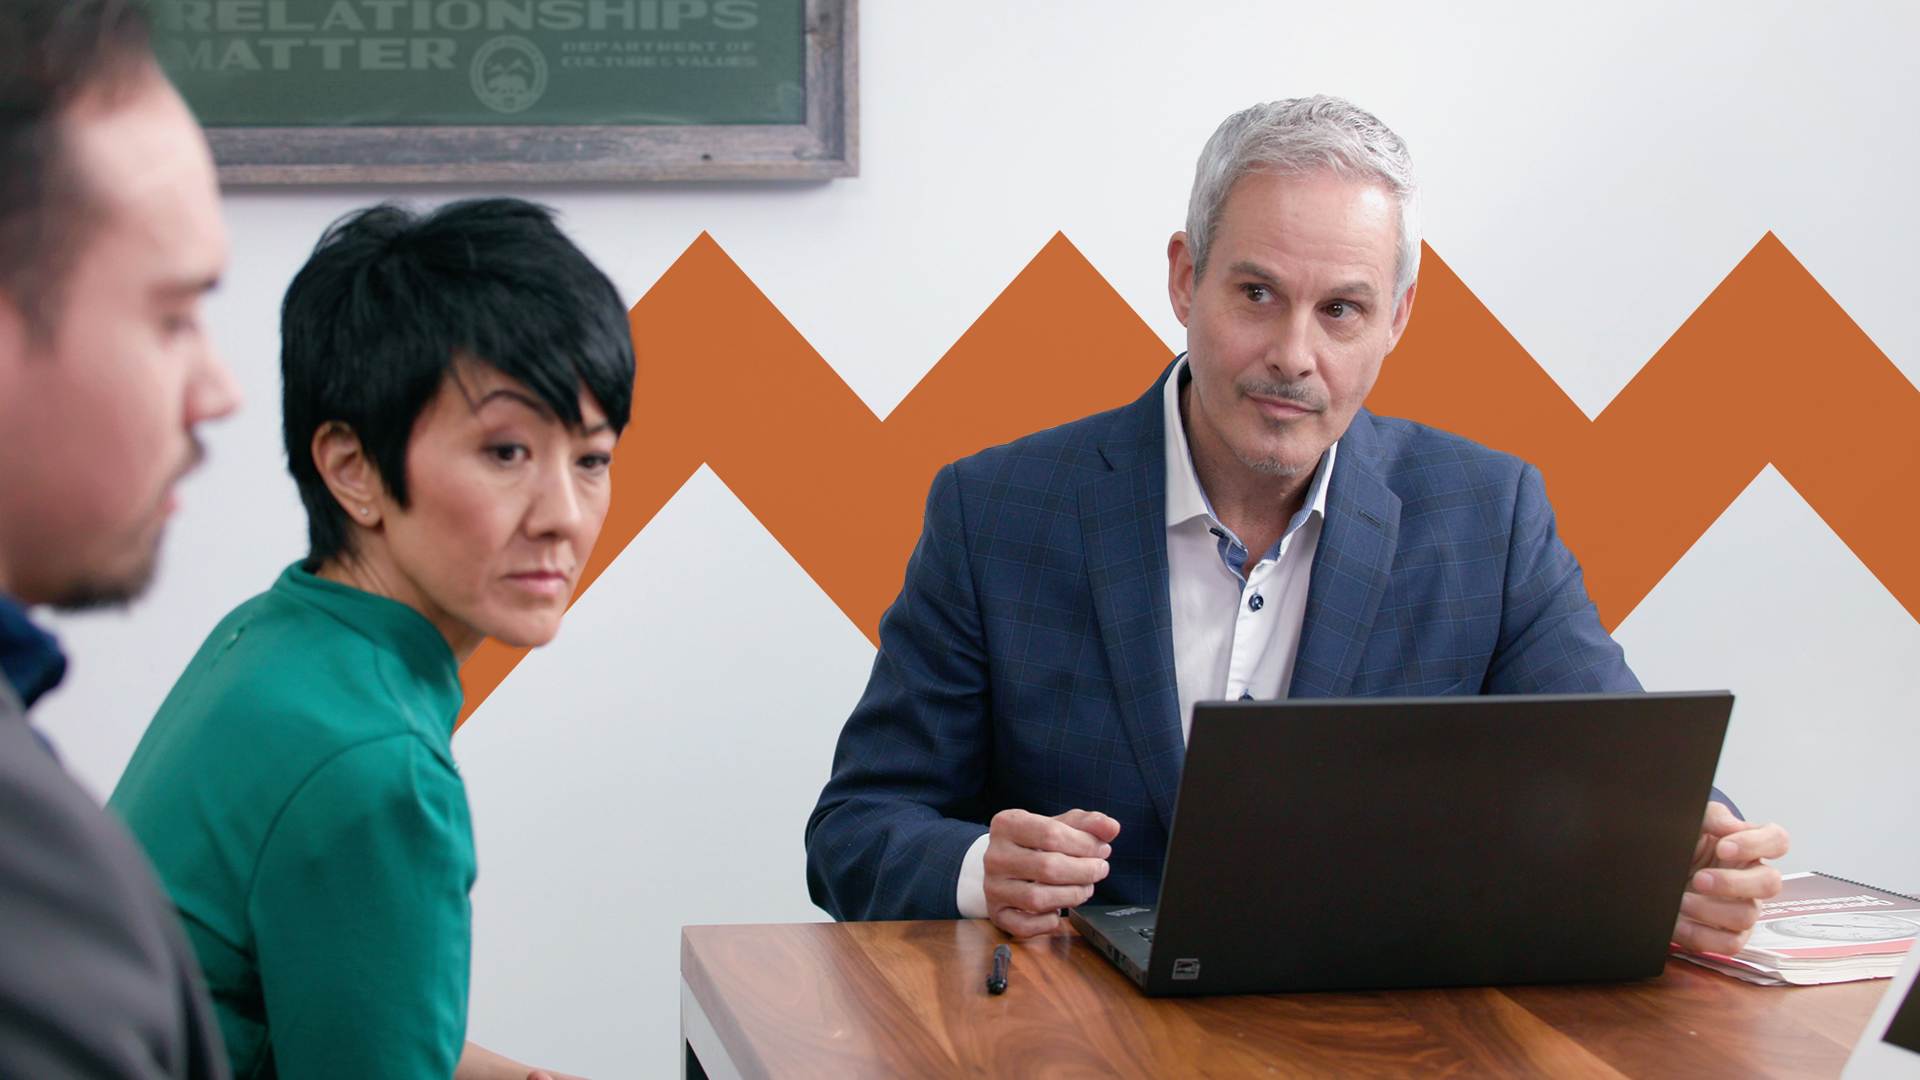 HR Strategy Online Courses | LinkedIn Learning, formerly